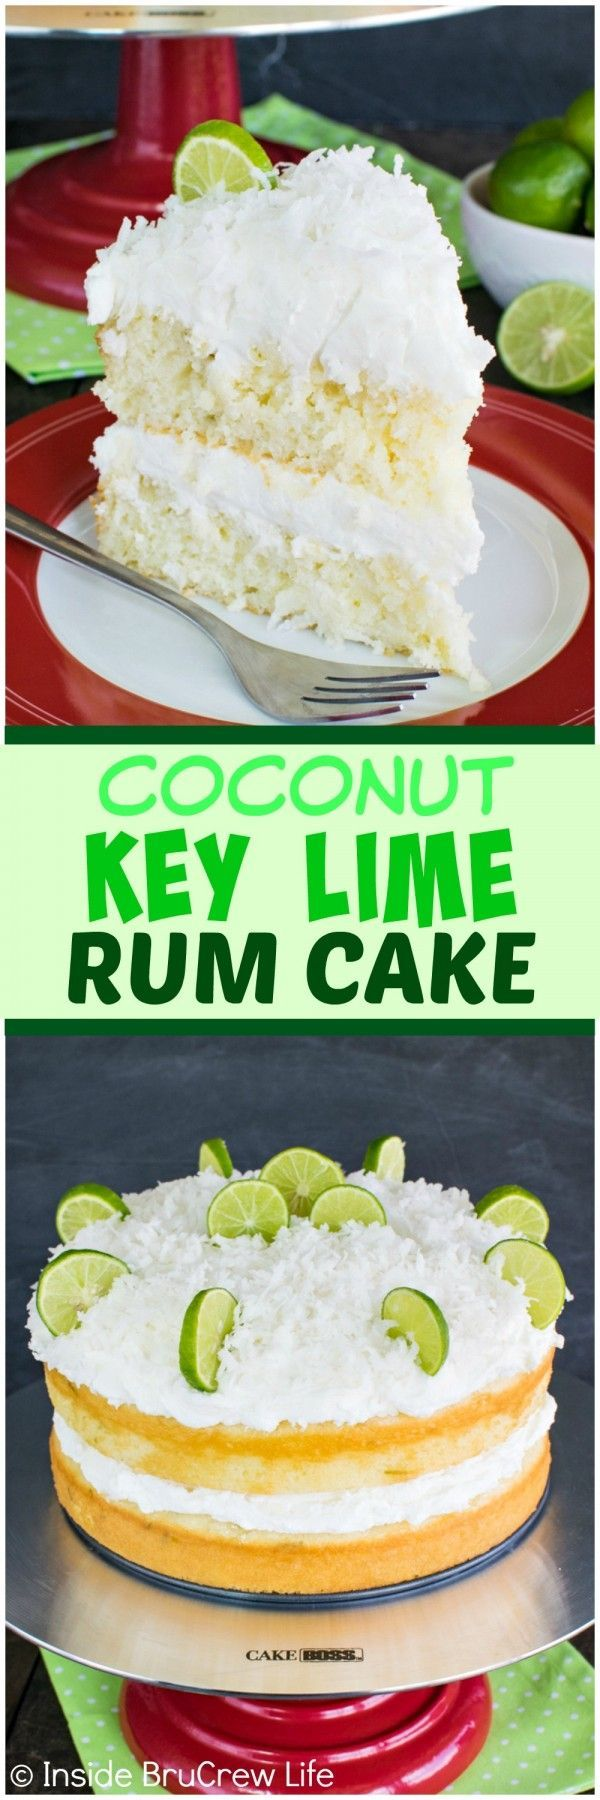 Coconut Key Lime Rum Cake – coconut frosting and a rum butter glaze adds a fun twist to this citrus cake!